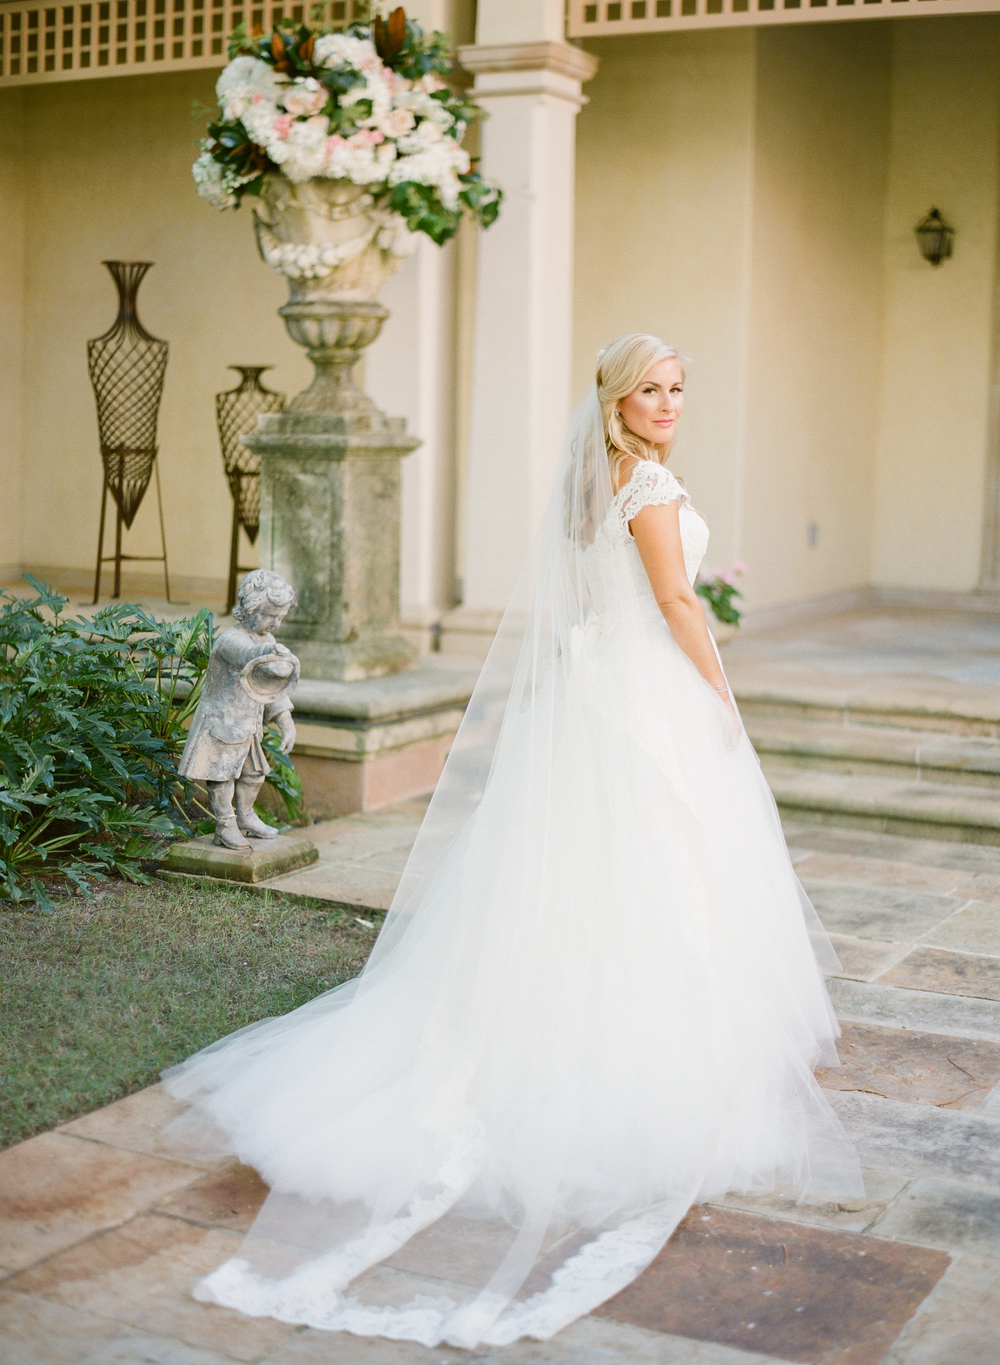 Ceci_New_York_Florida_Wedding_Style_Bride_Watercolor_Real_Custom_Luxury_51.jpg